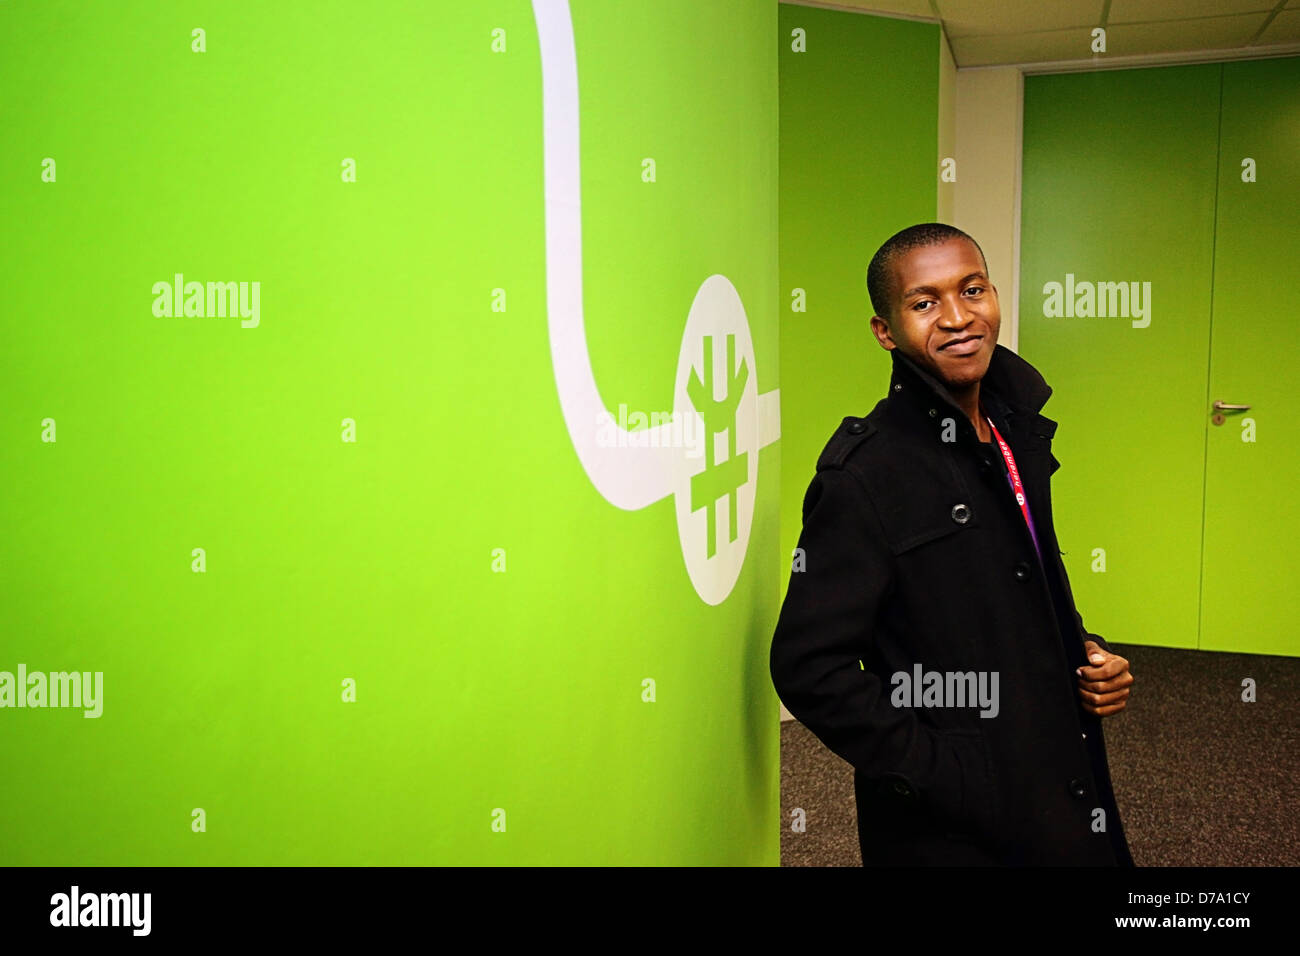 Cape Town based student training to be entry-level worker posing by a green wall - Stock Image